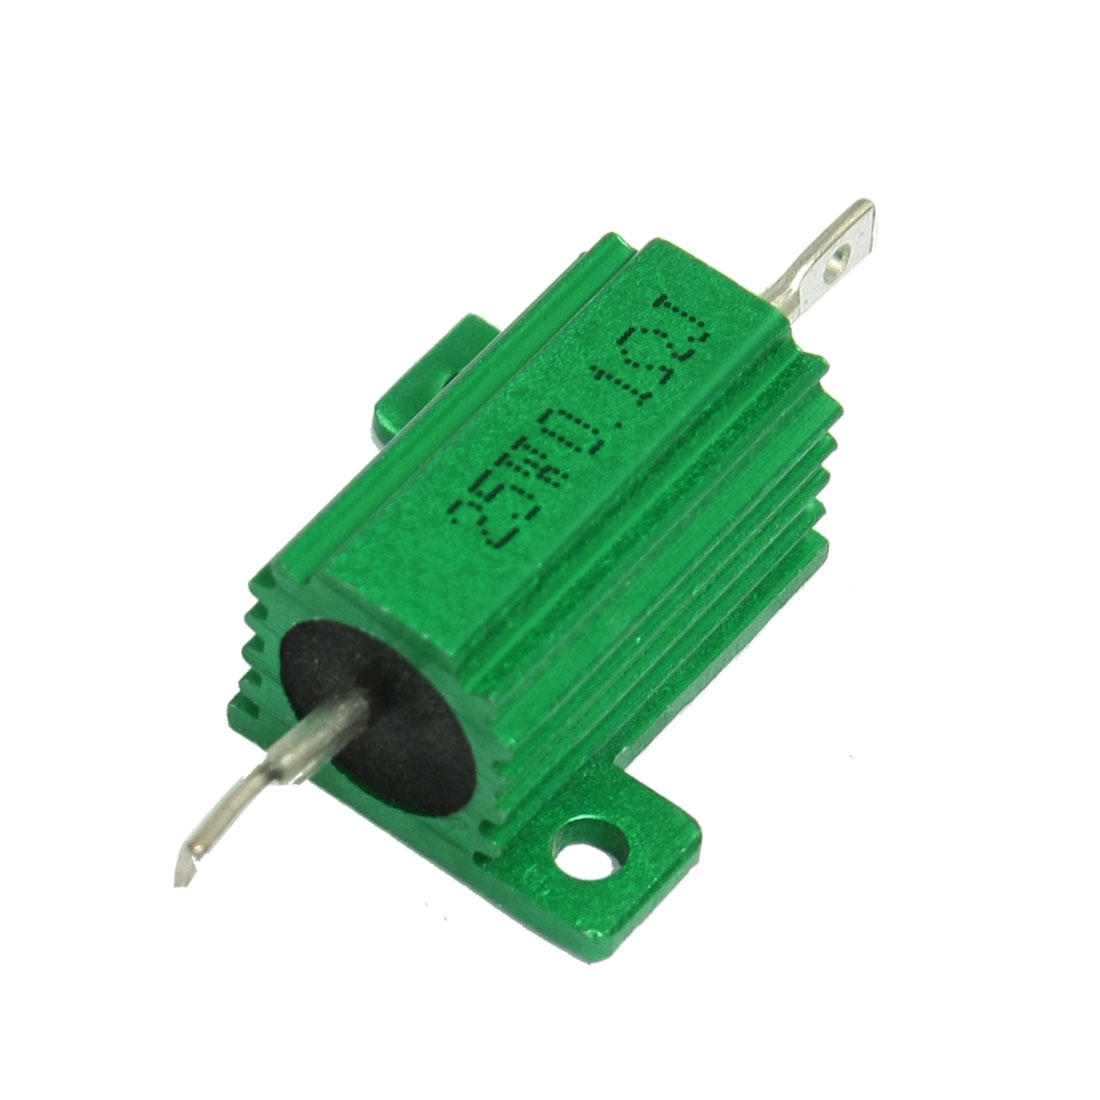 25W 0.1 Ohm Green Aluminium Chassis Mounted Wirewound Resistor